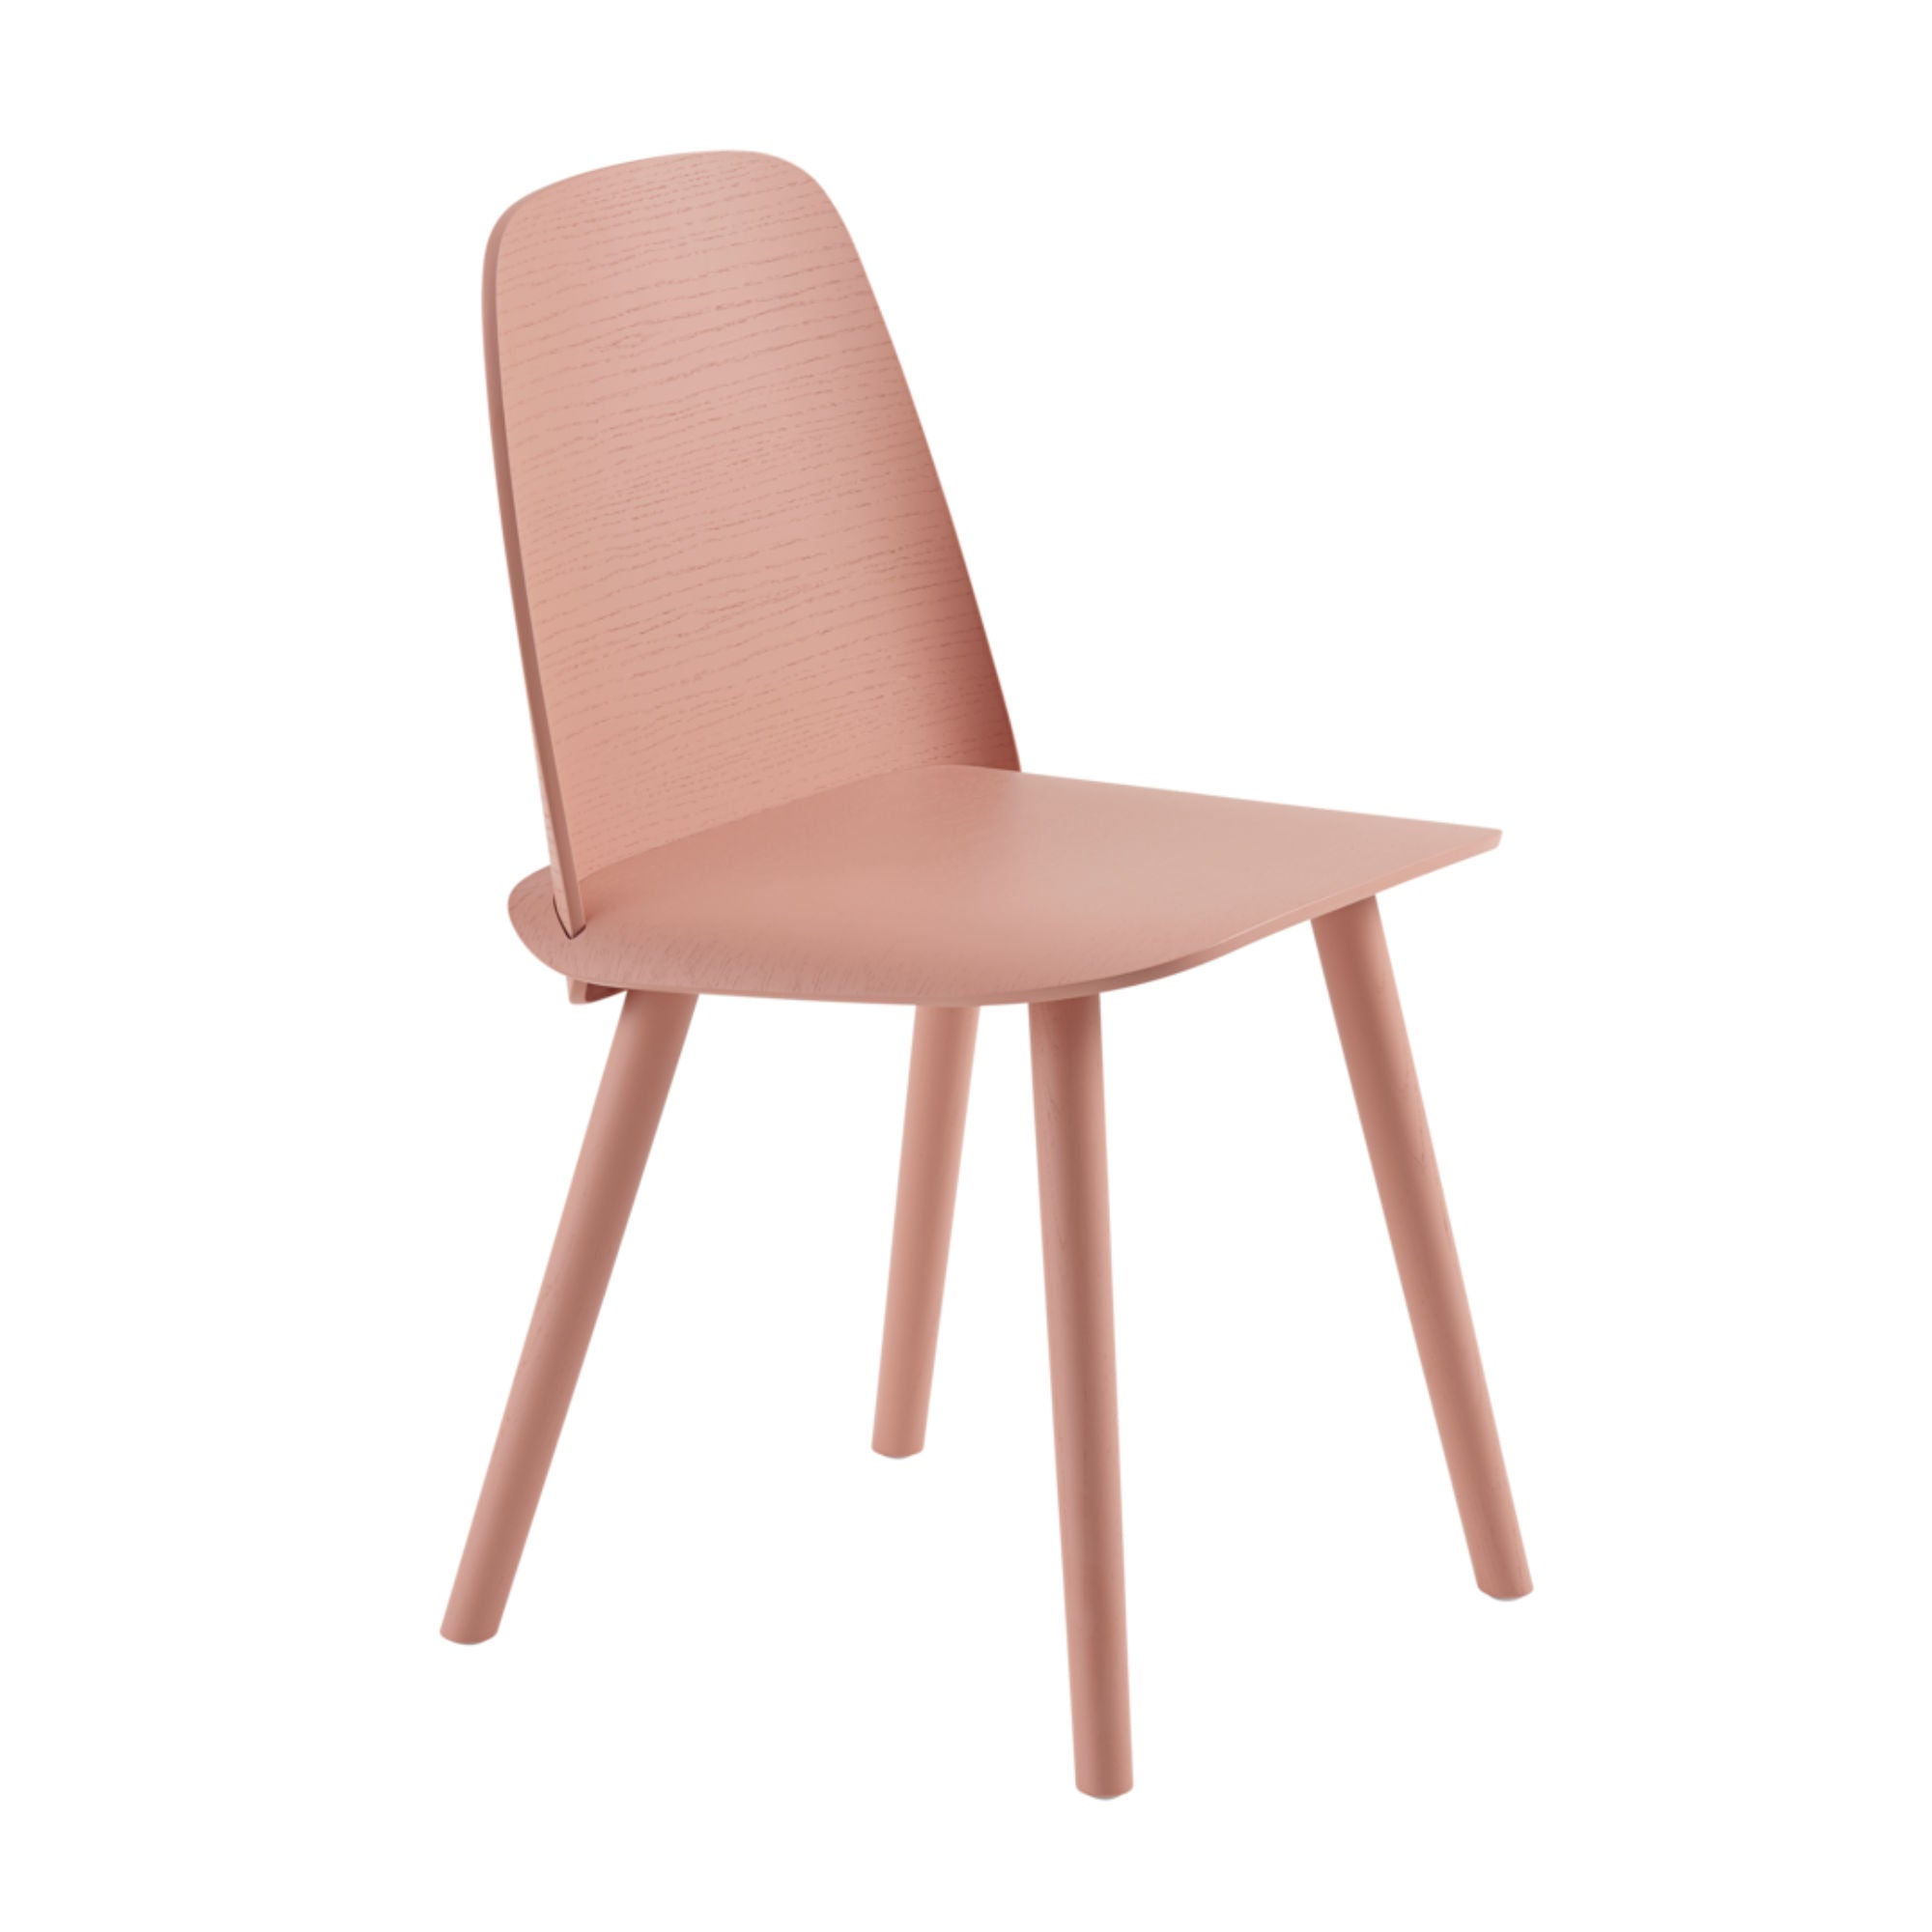 Muuto Nerd Chair , Tan Rose